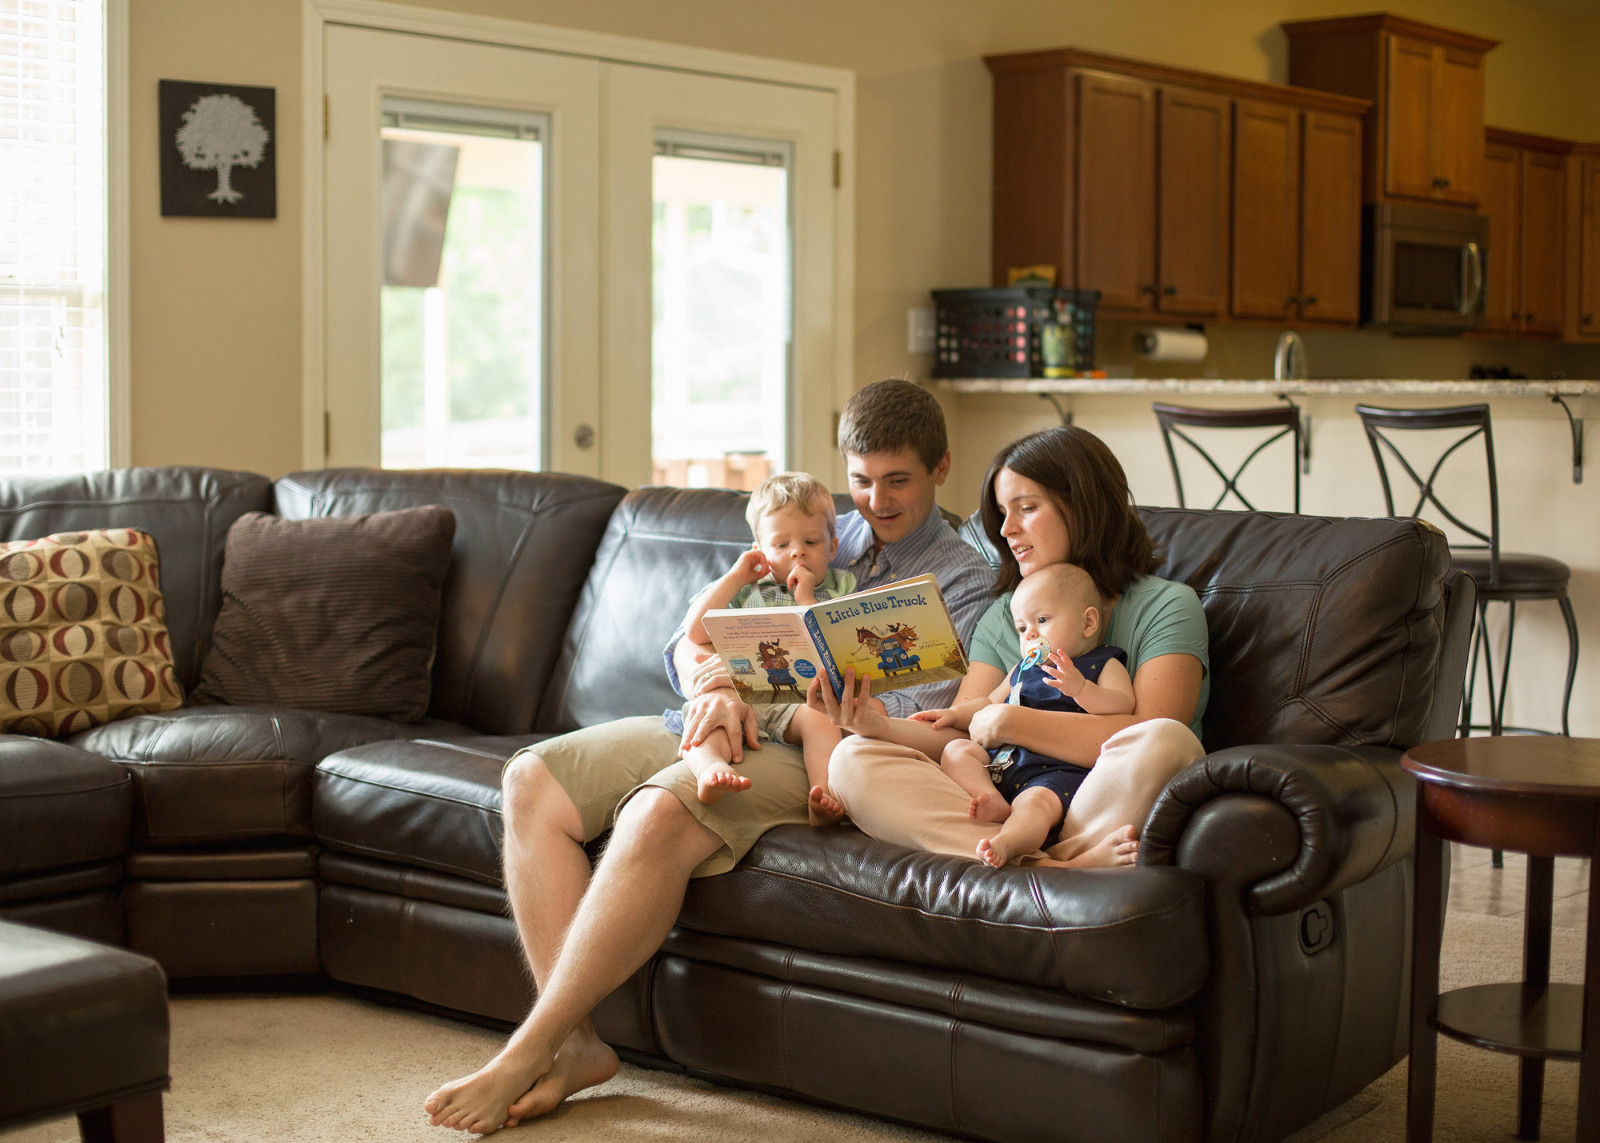 family sitting together on a couch reading a book